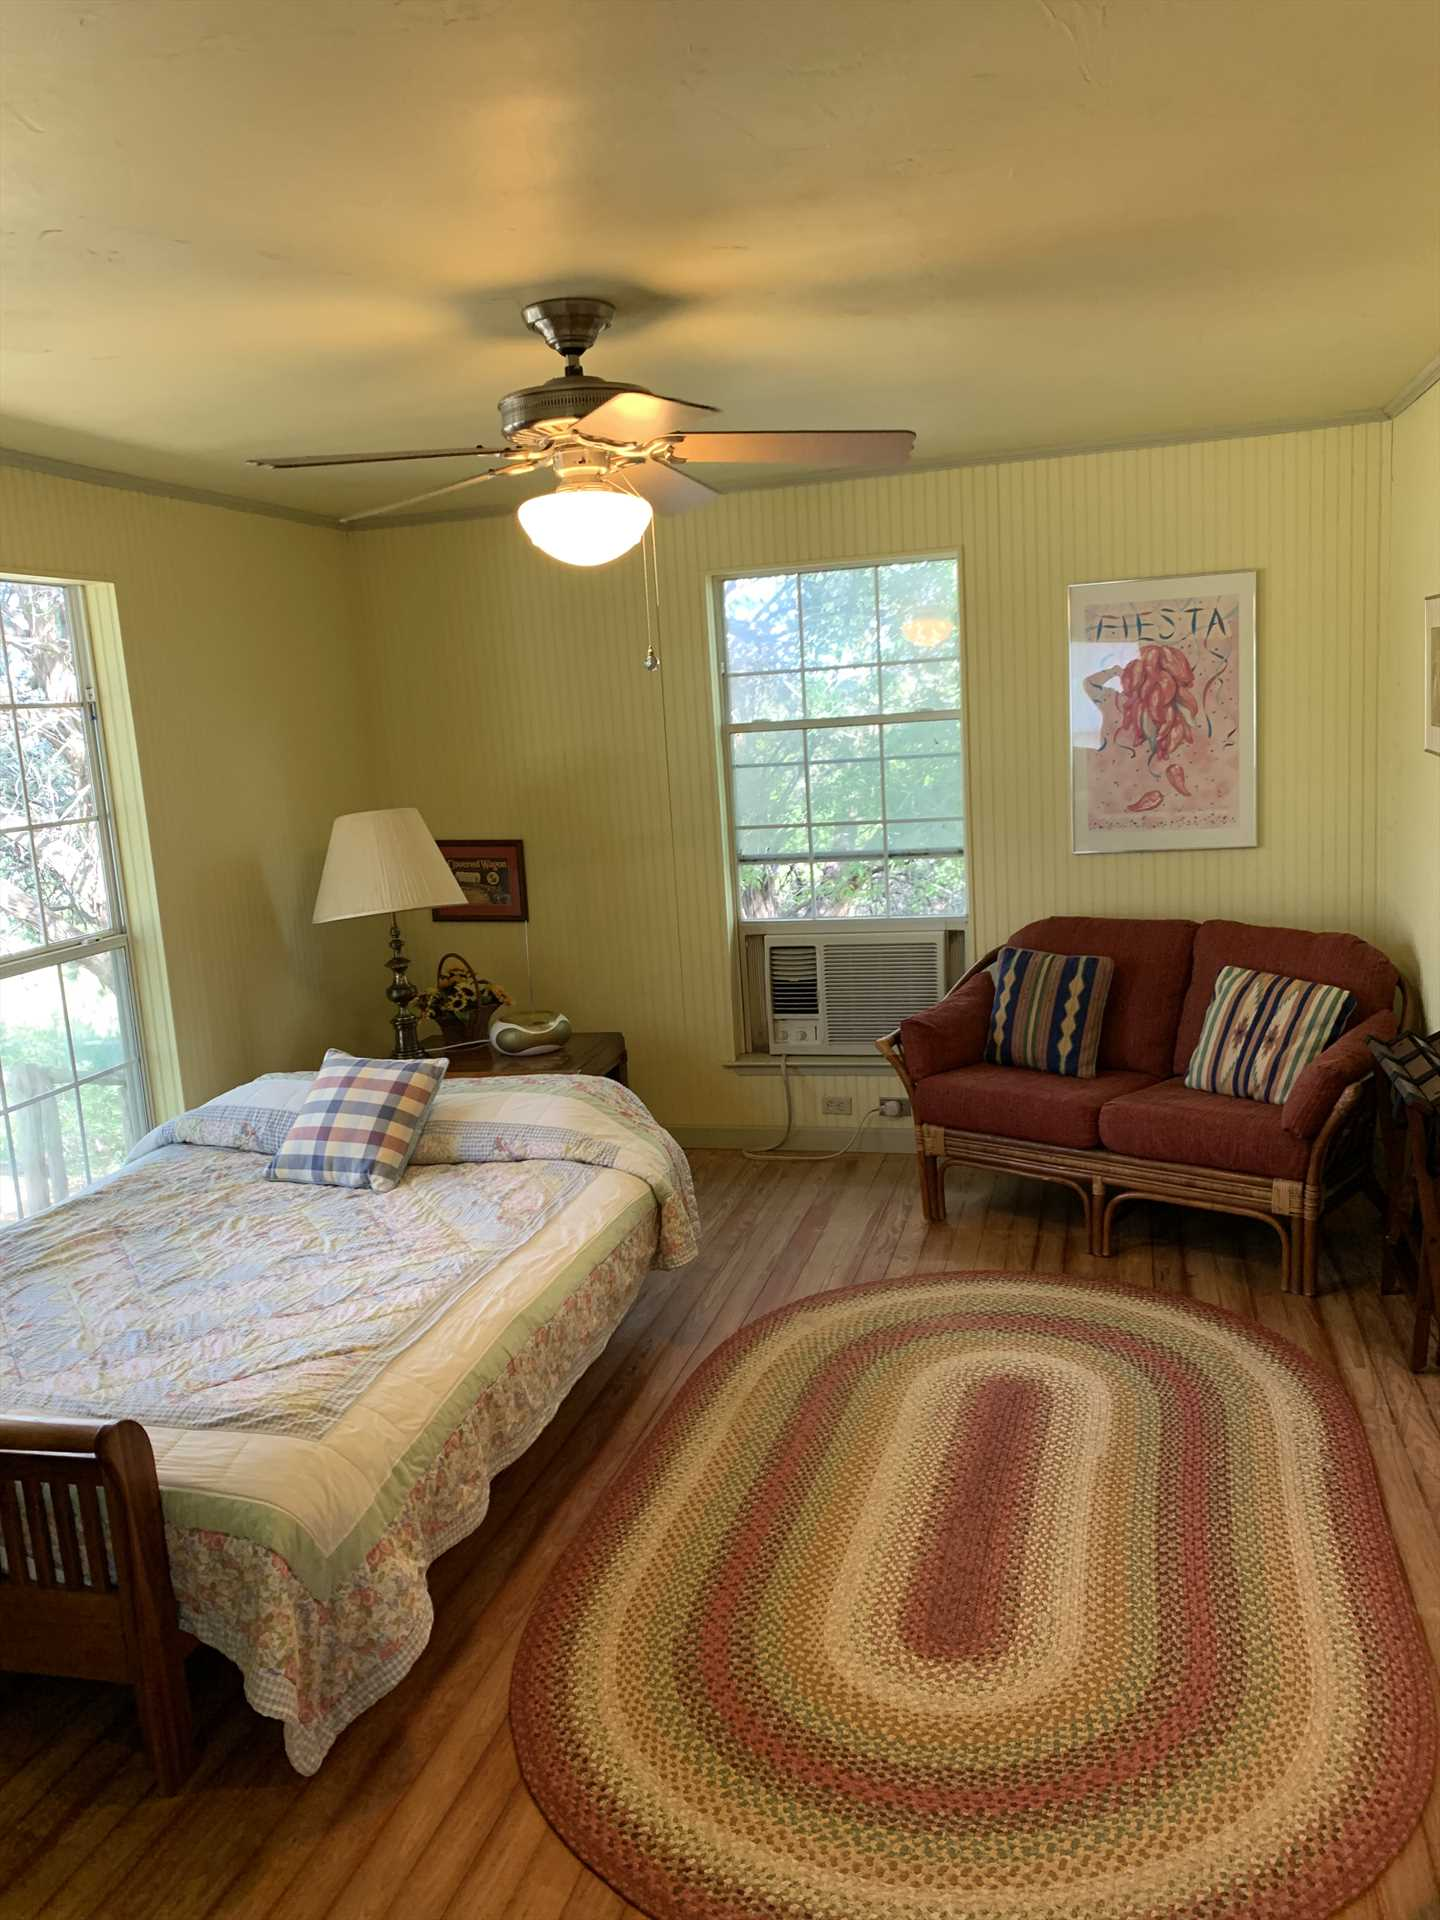 Ceiling fans, AC and heating units help keep the interior space just the way you like it!